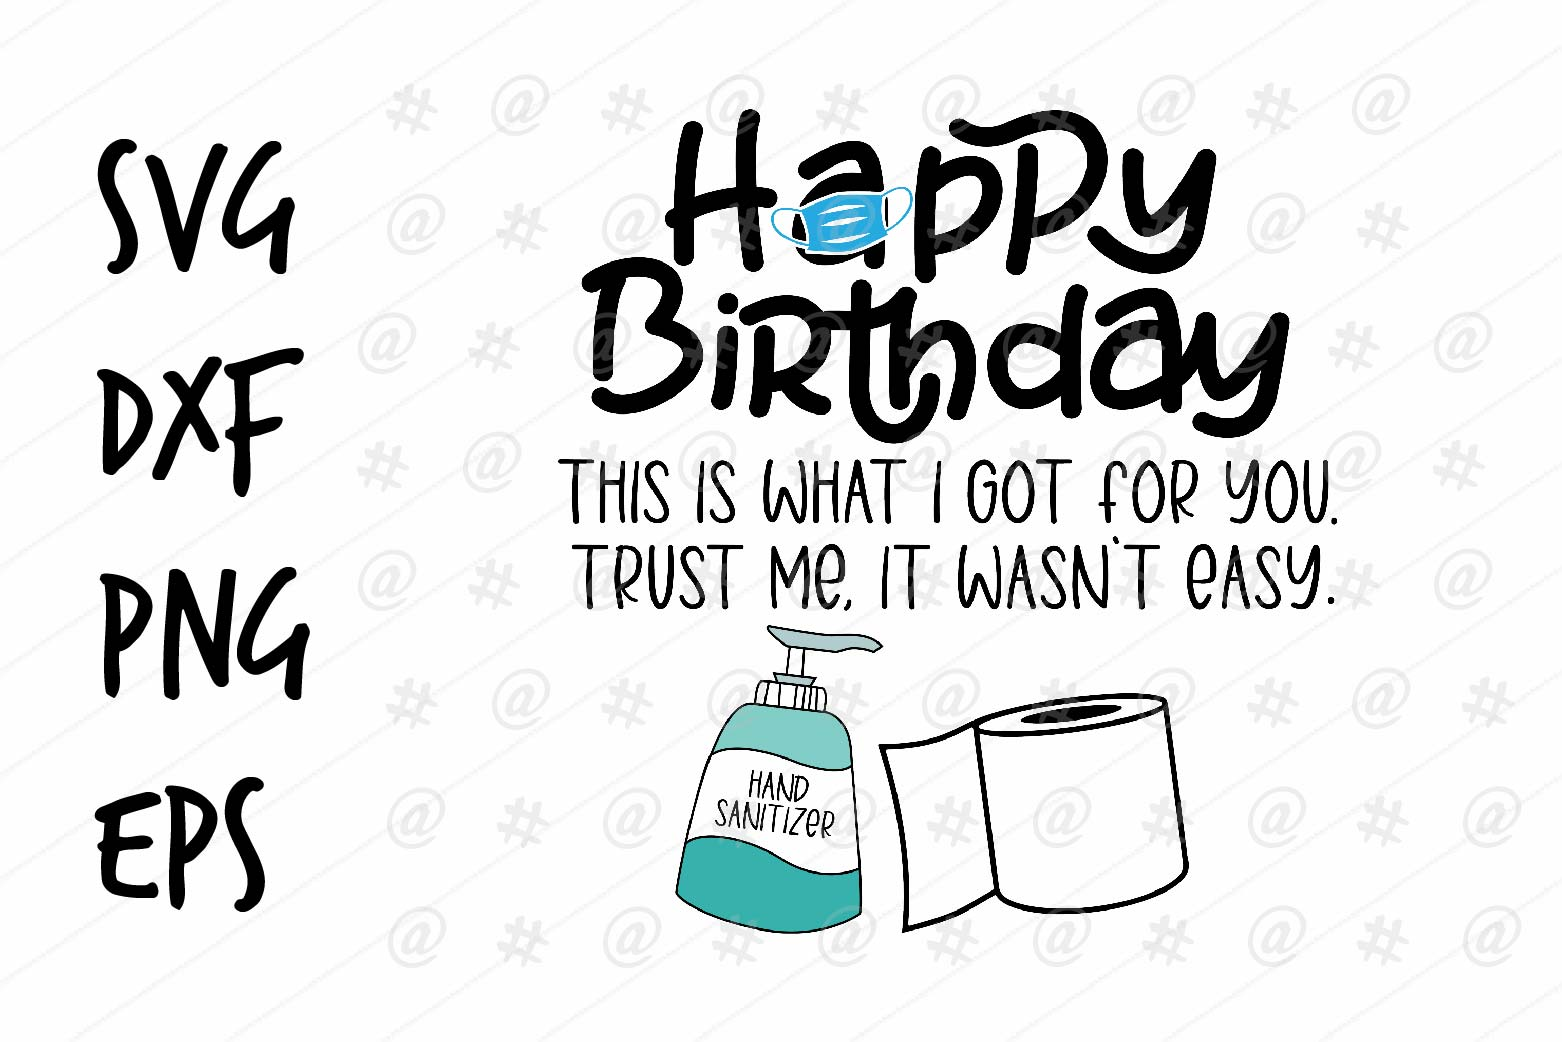 Download Free Happy Birthday Graphic By Spoonyprint Creative Fabrica for Cricut Explore, Silhouette and other cutting machines.